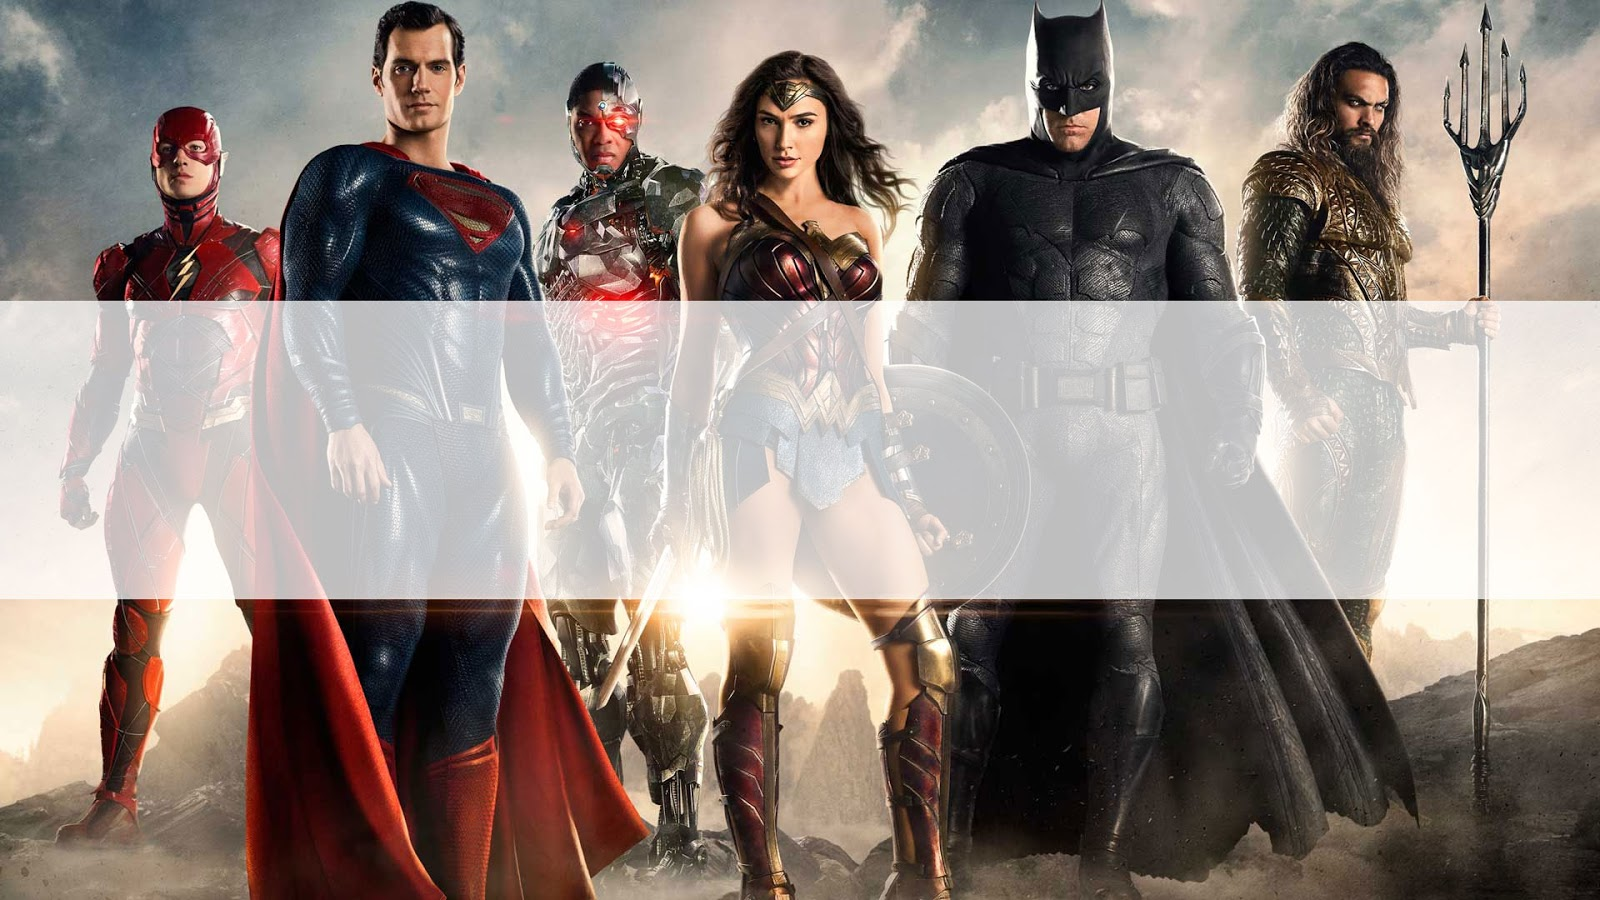 Justice league all free templates this amazing justice lague image can be used as background on first title slide of your power point presentation it has white thick line over the center toneelgroepblik Images